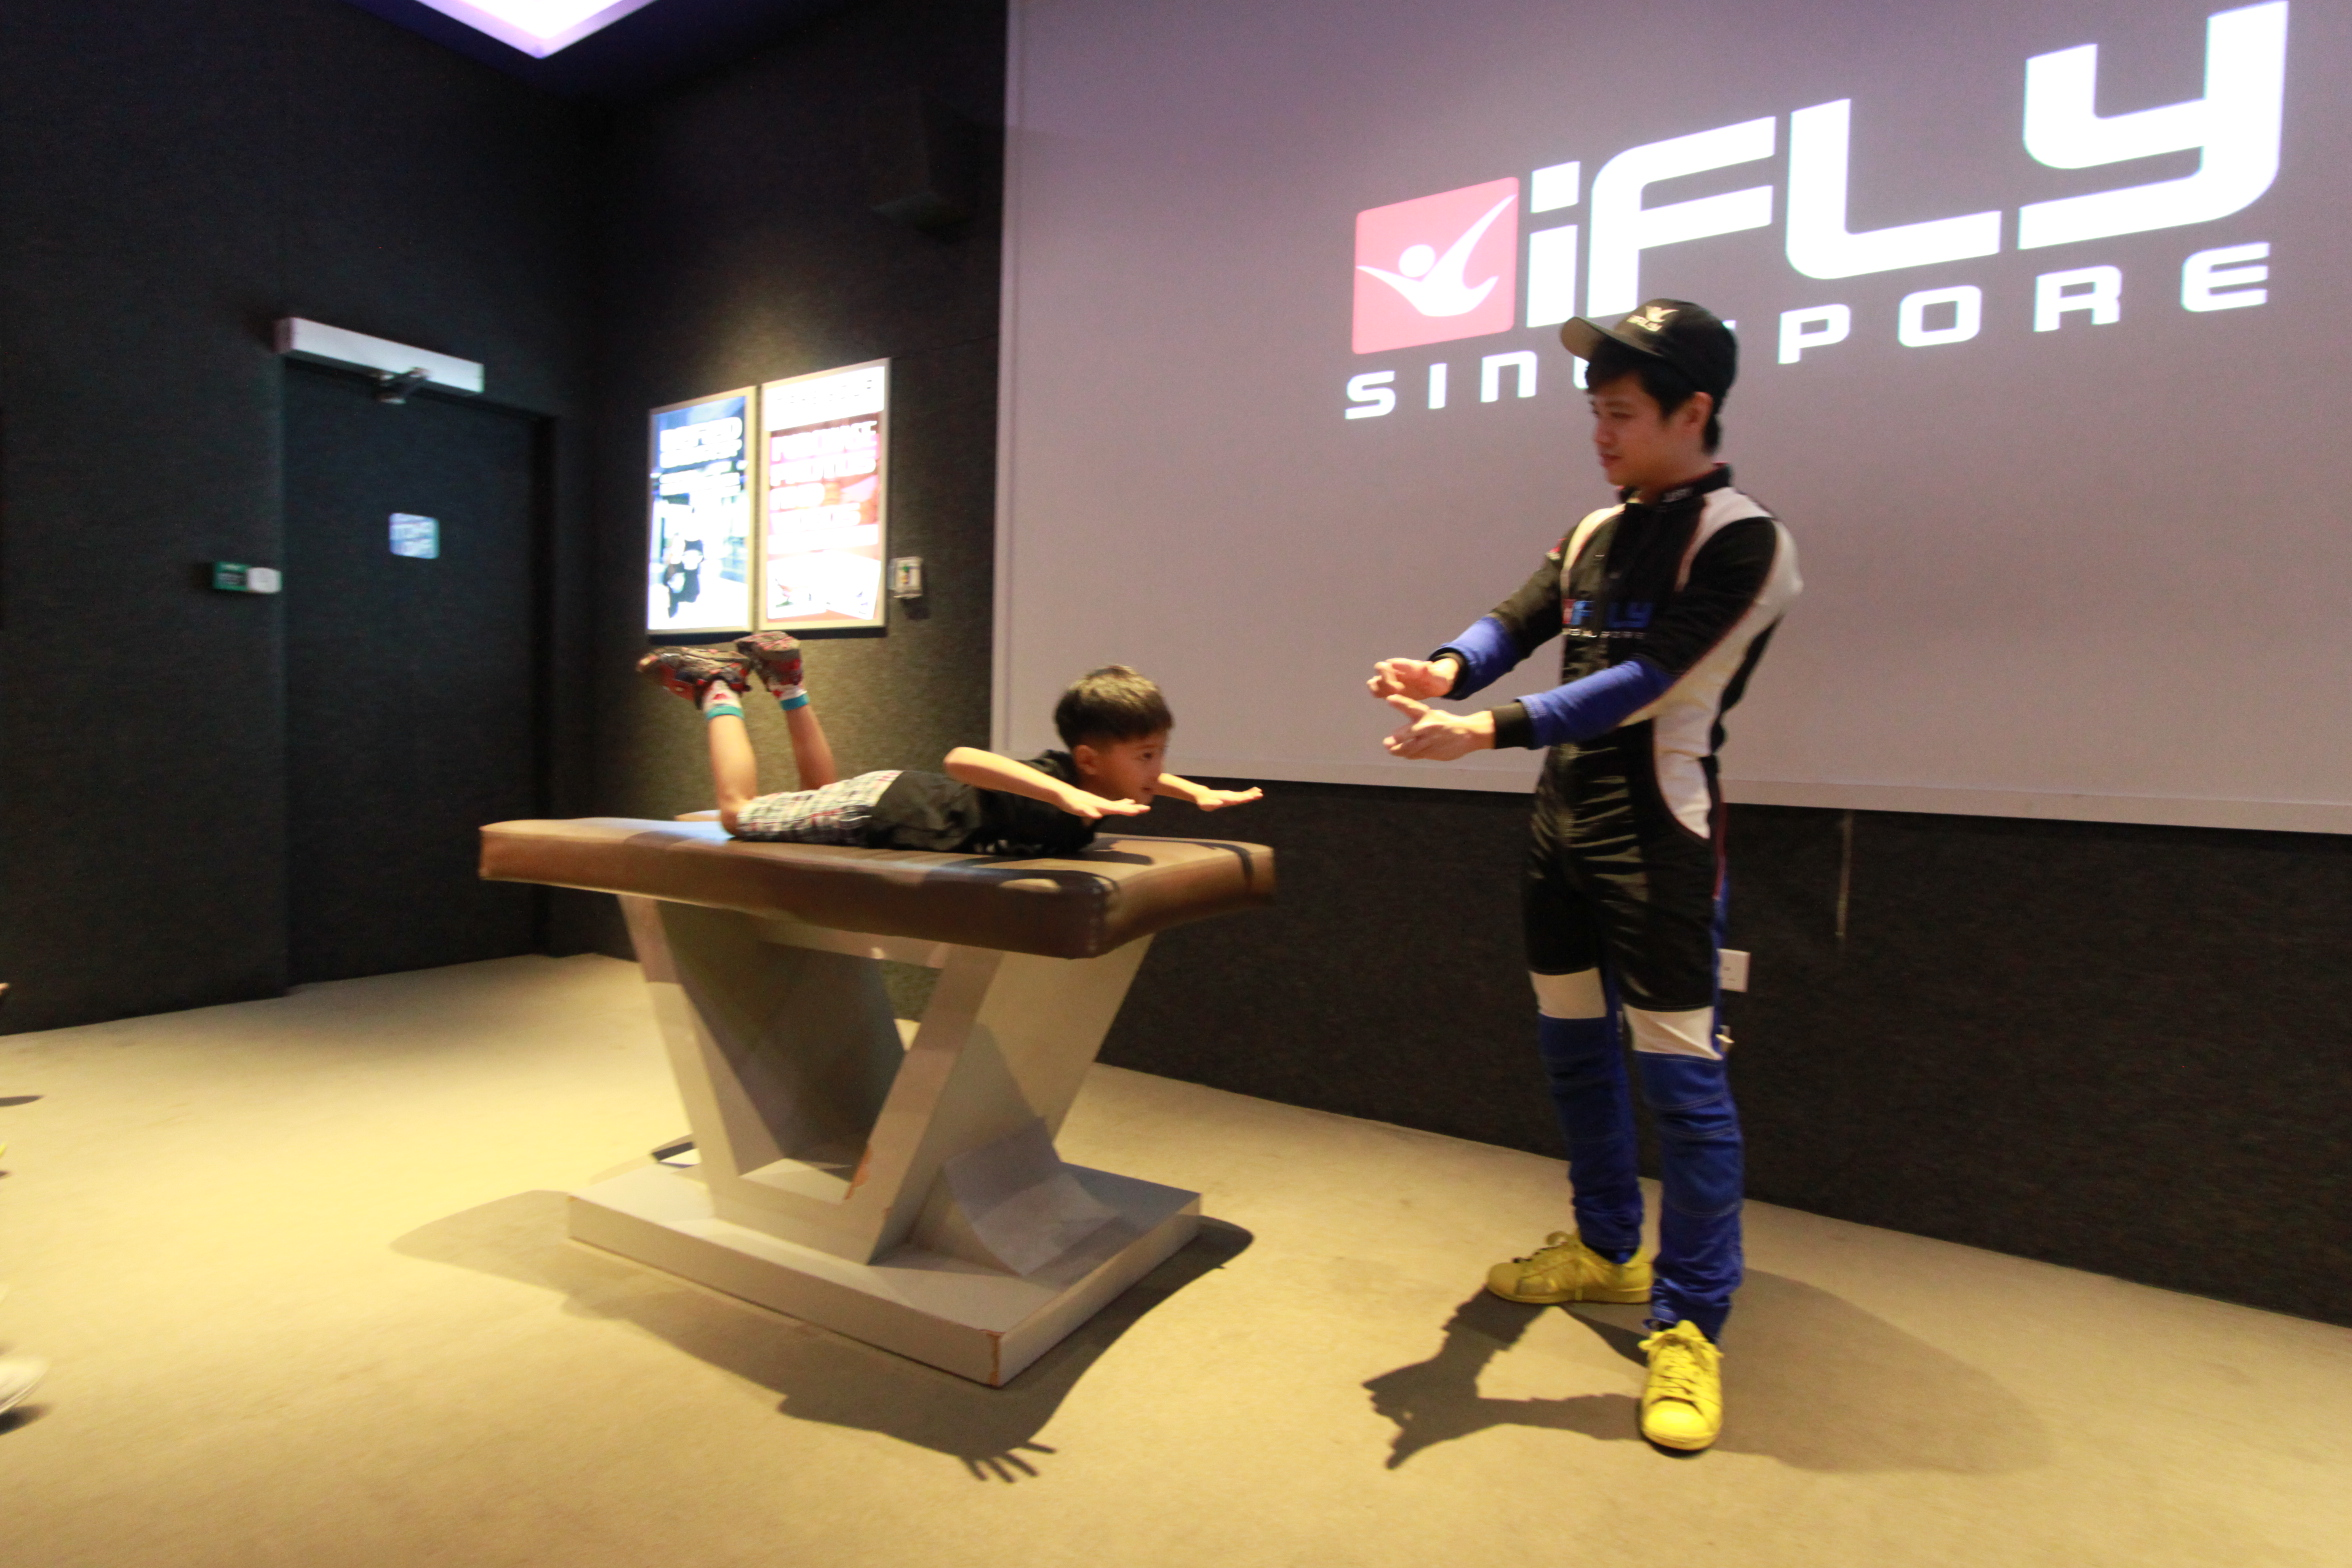 Ifly Singapore To A 7 Year Old Probably His Best And Most Wow Adult Finally Its Time For The Real Thing They Are All Escorted Upstair Flying Chamber Area Can See On Going Flight As Well But Now